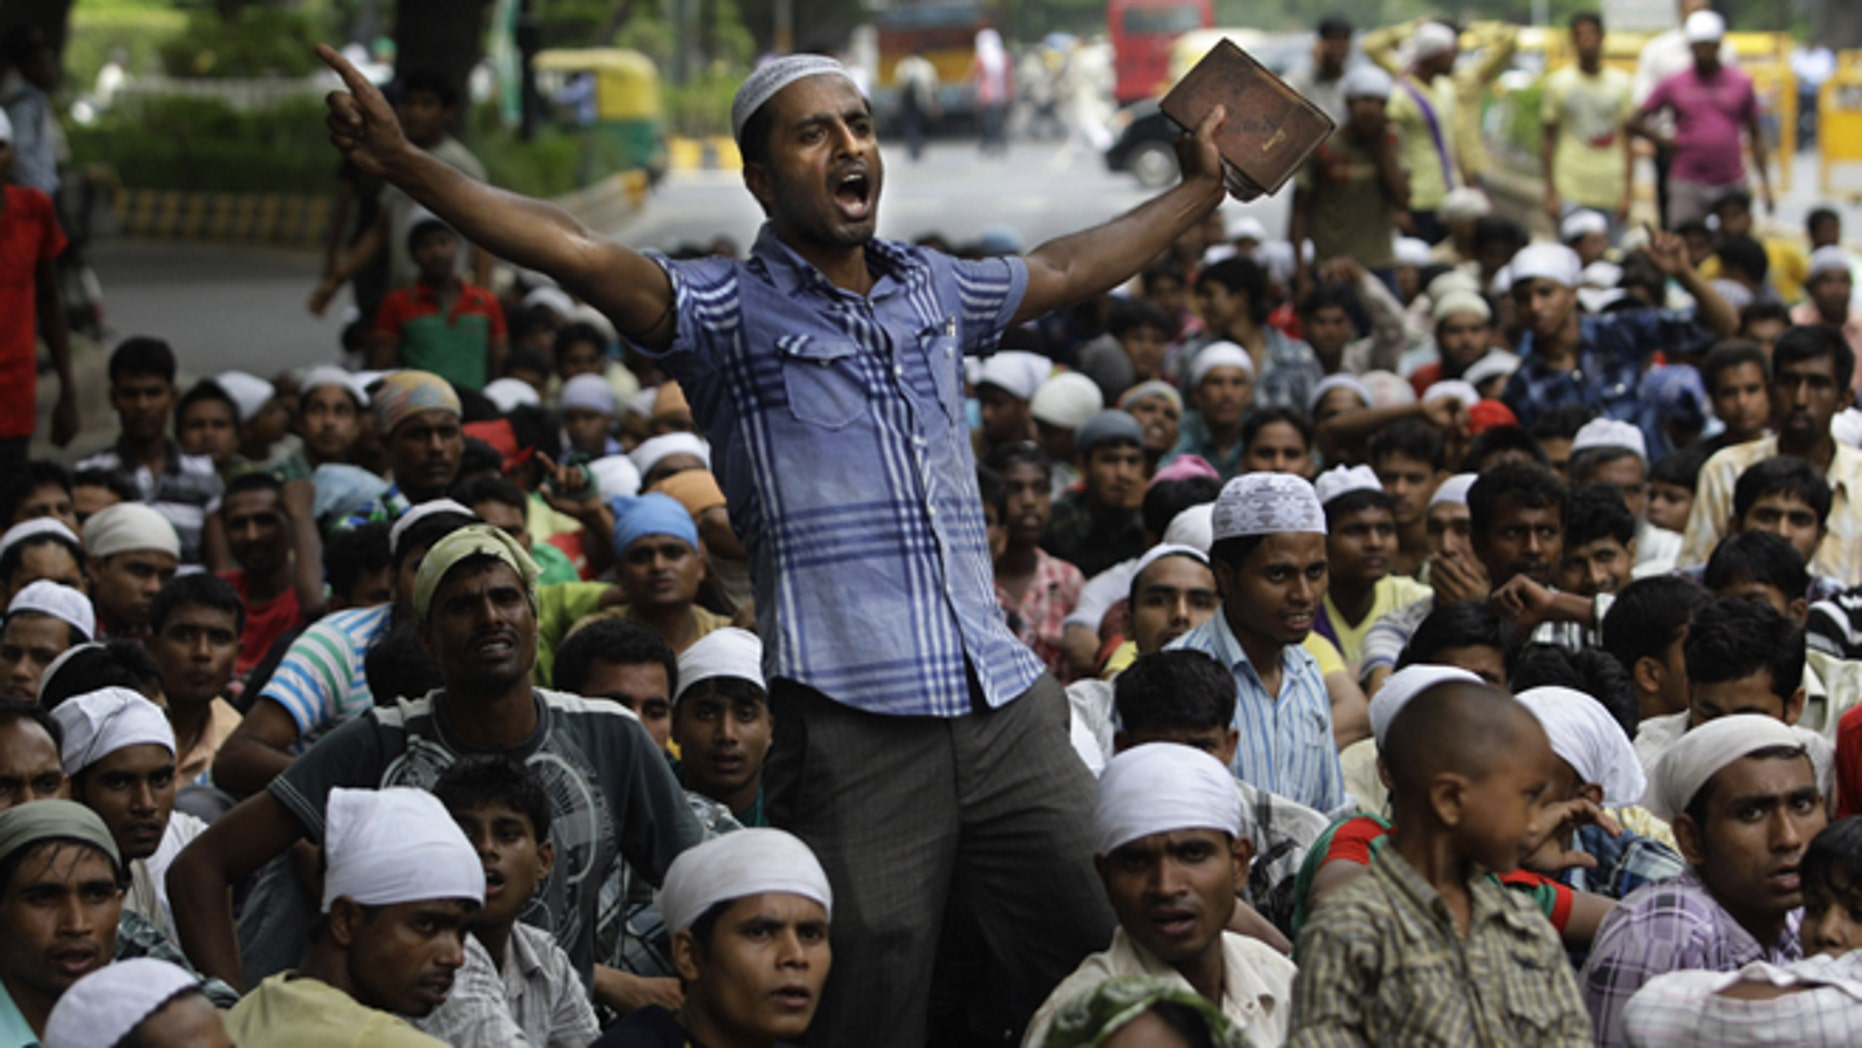 July 25, 2012: Muslims hailing from India's north eastern Assam state and living in New Delhi shout slogans during a protest against the ethnic violence in Assam in New Delhi, India.